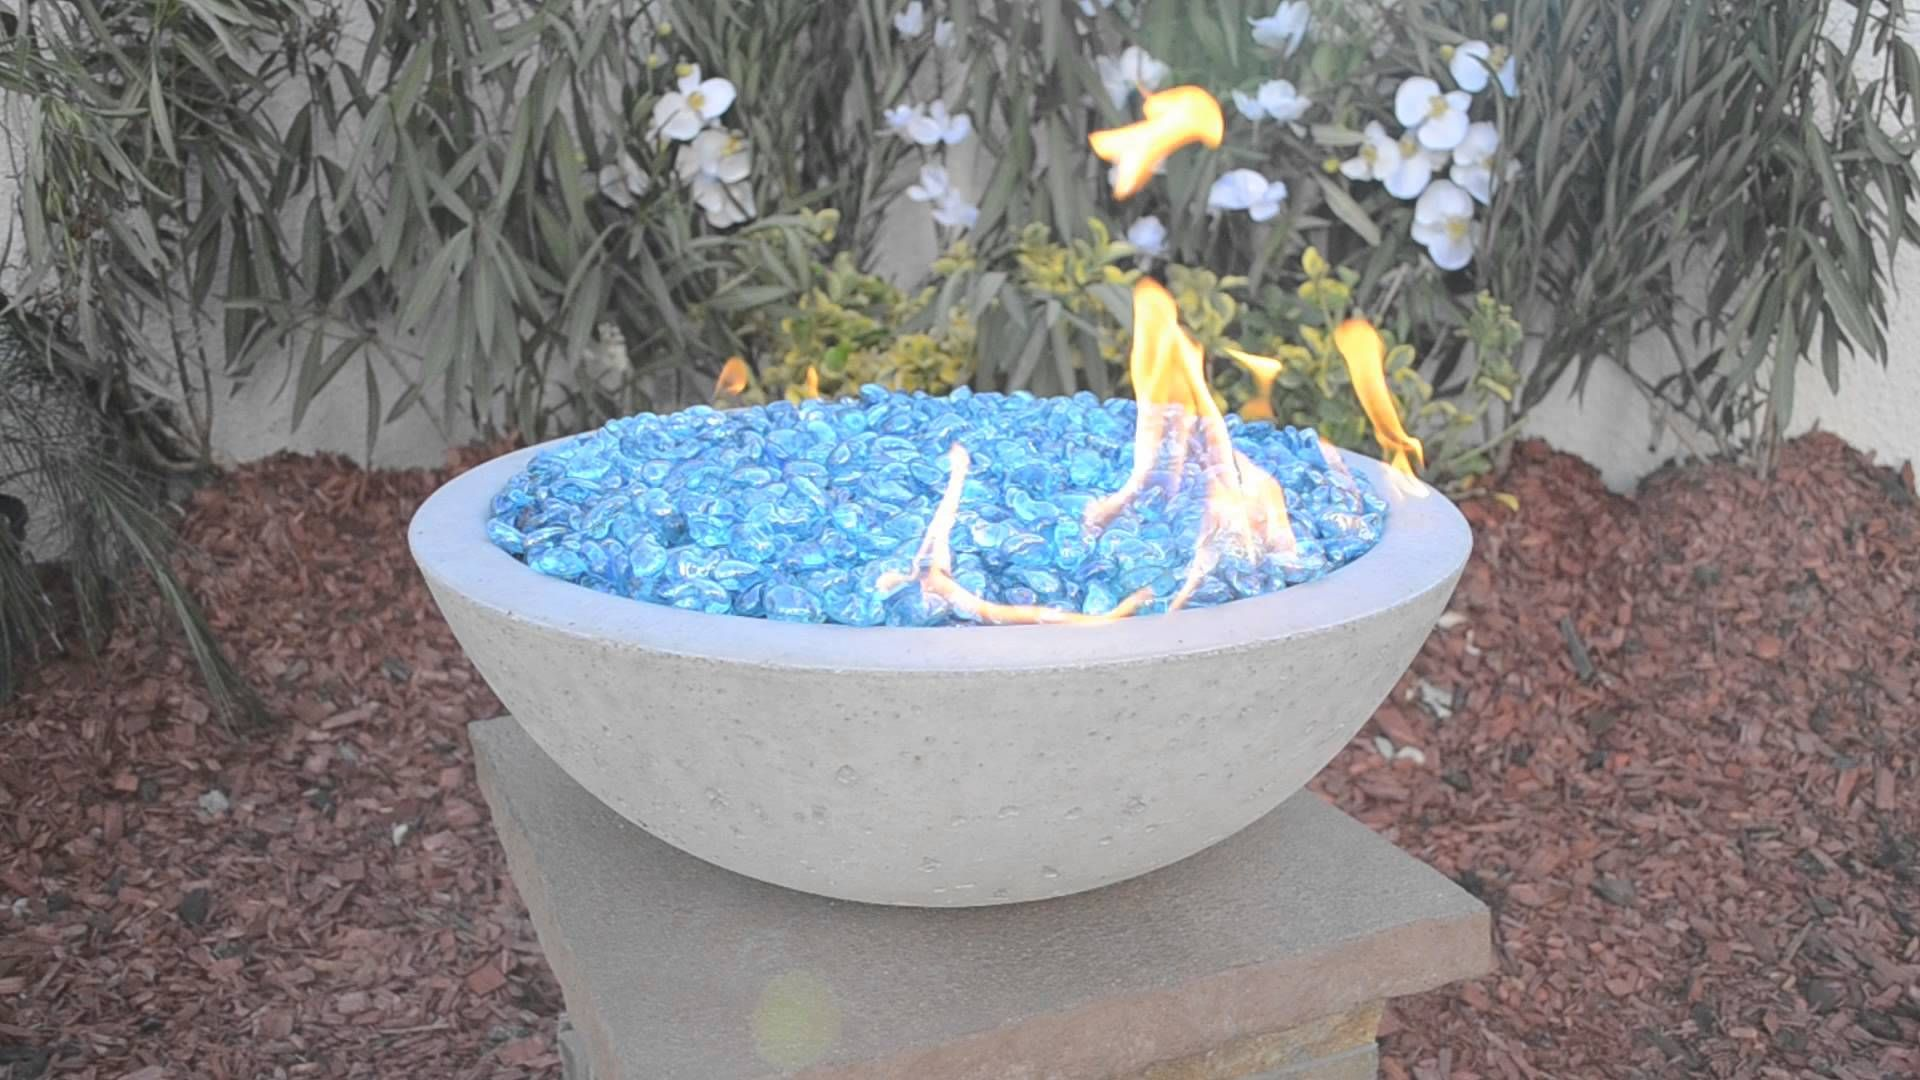 Concrete Fire Bowl. Grey Fire Bowl with Ice Blue Fire Beads.http://outdoorfireandpatio.com/